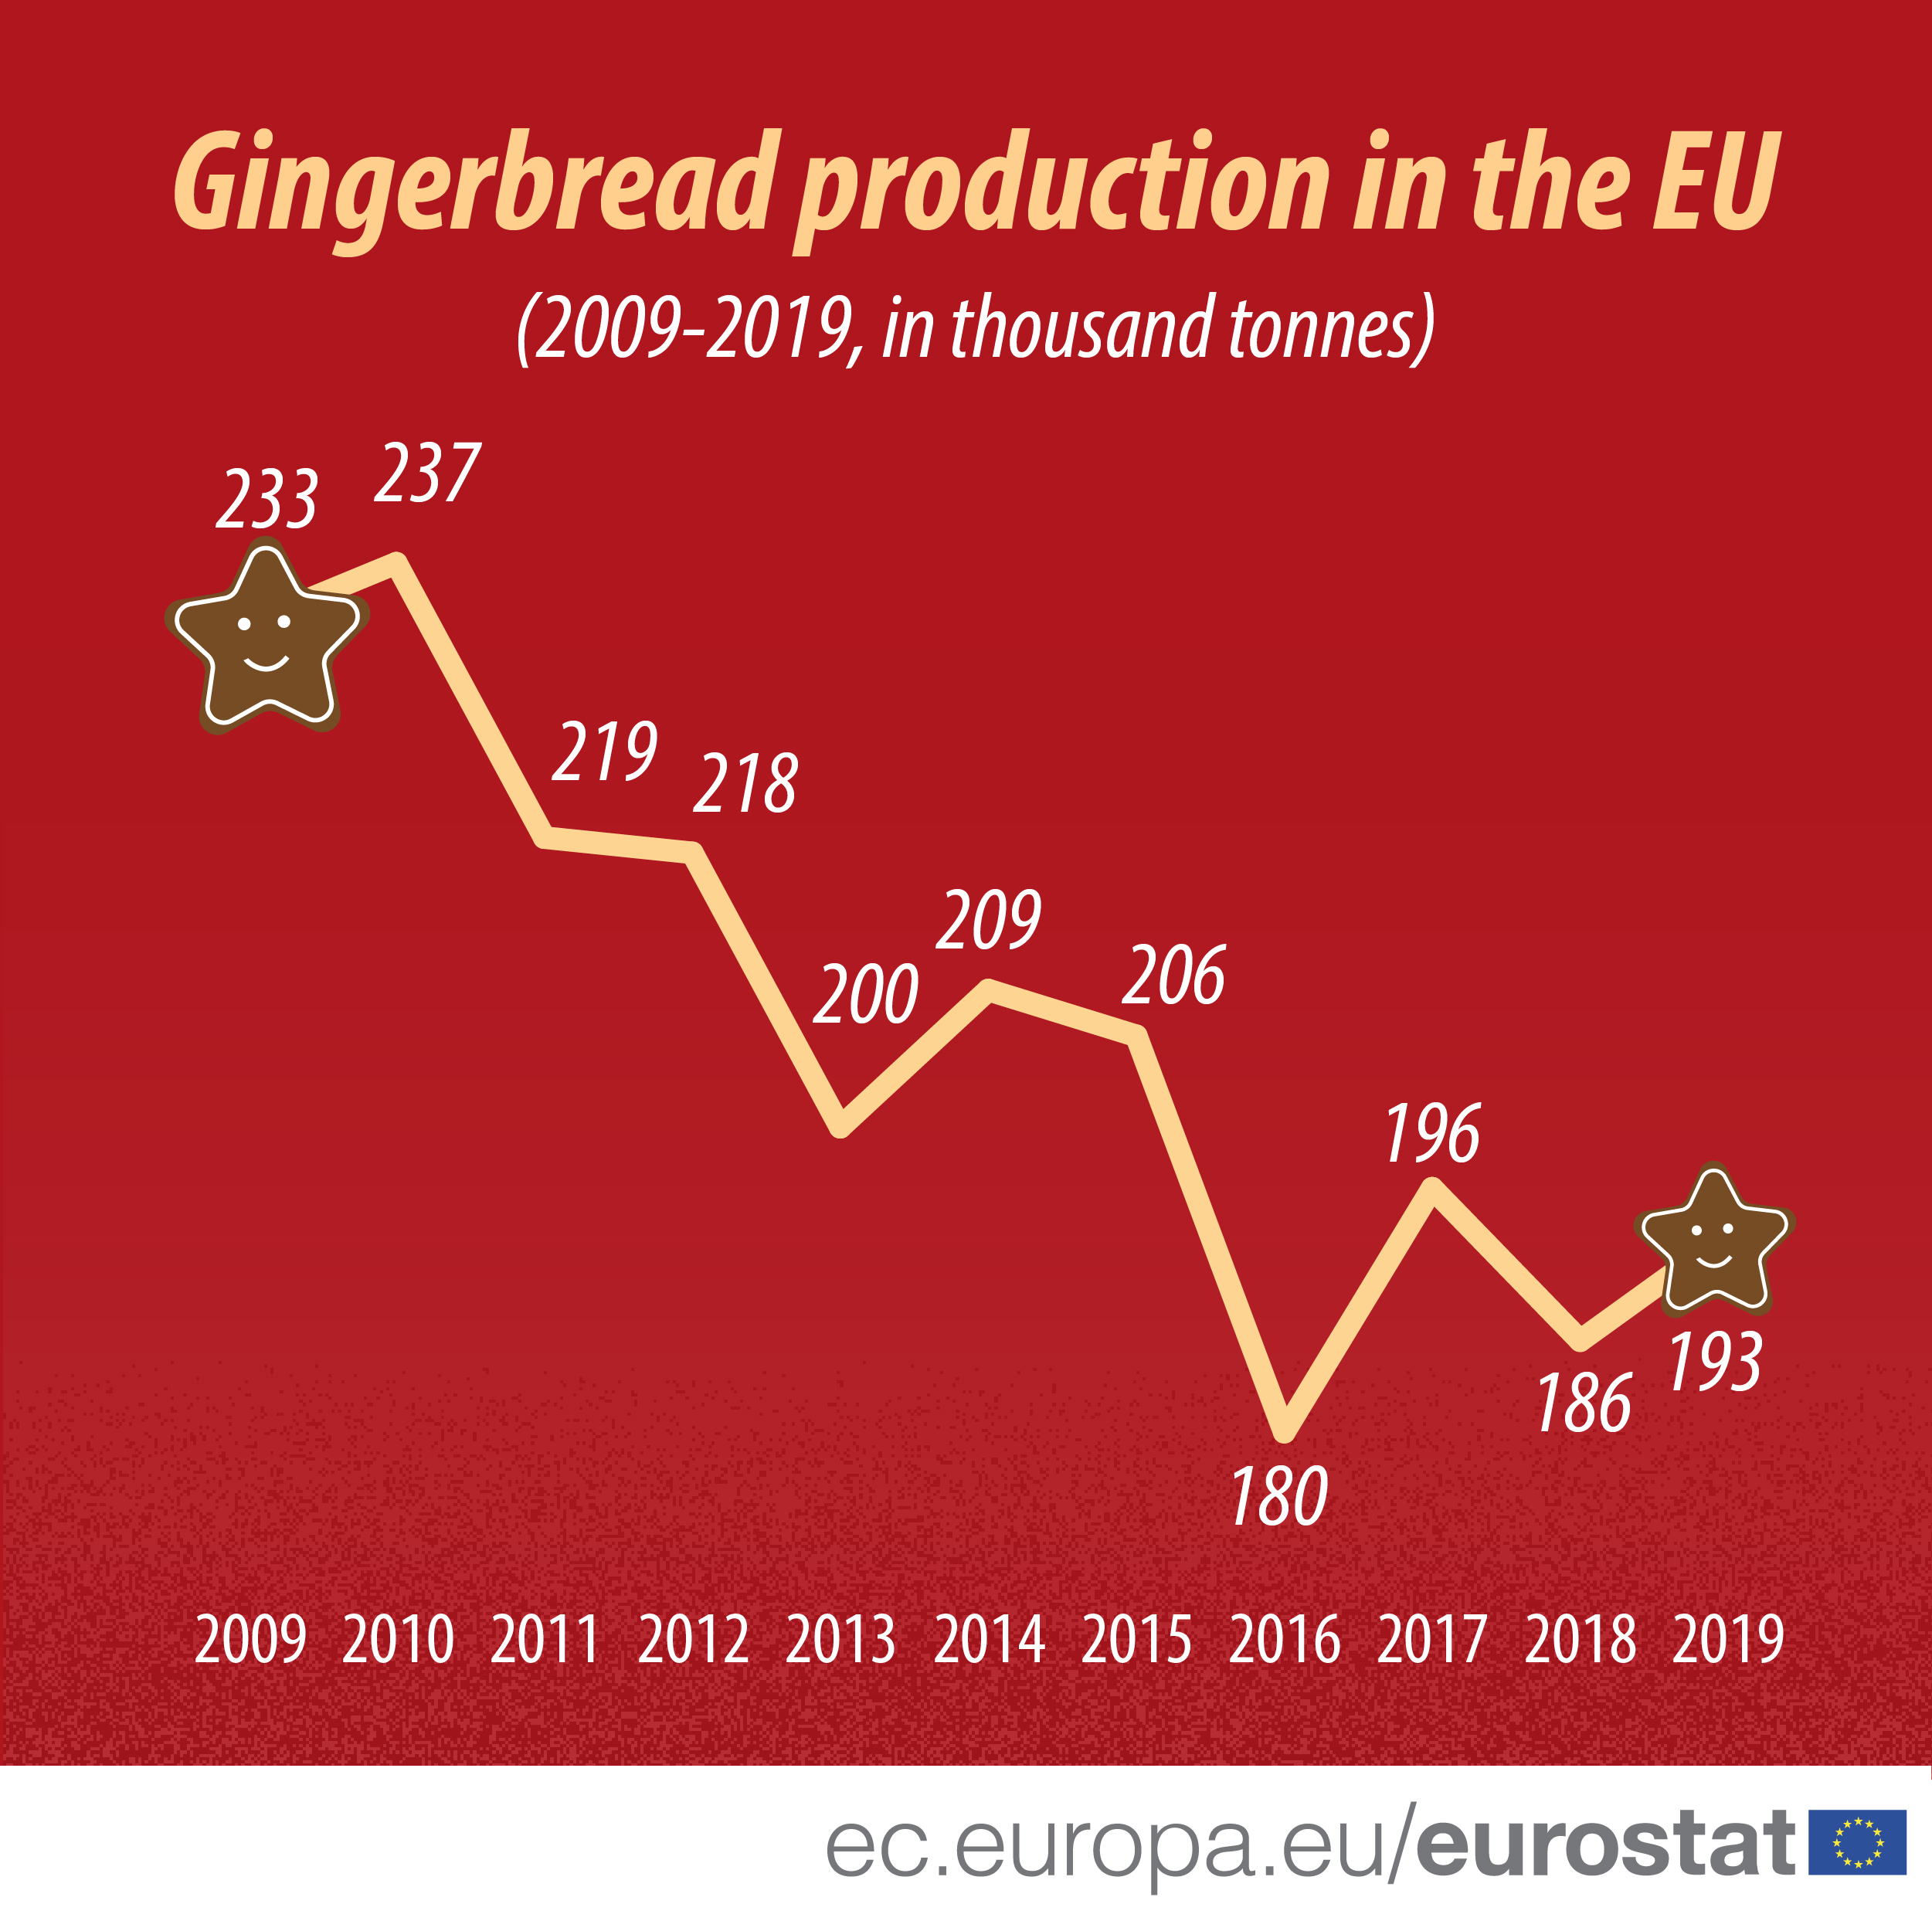 Gingerbread production in the EU, 2009 - 2019